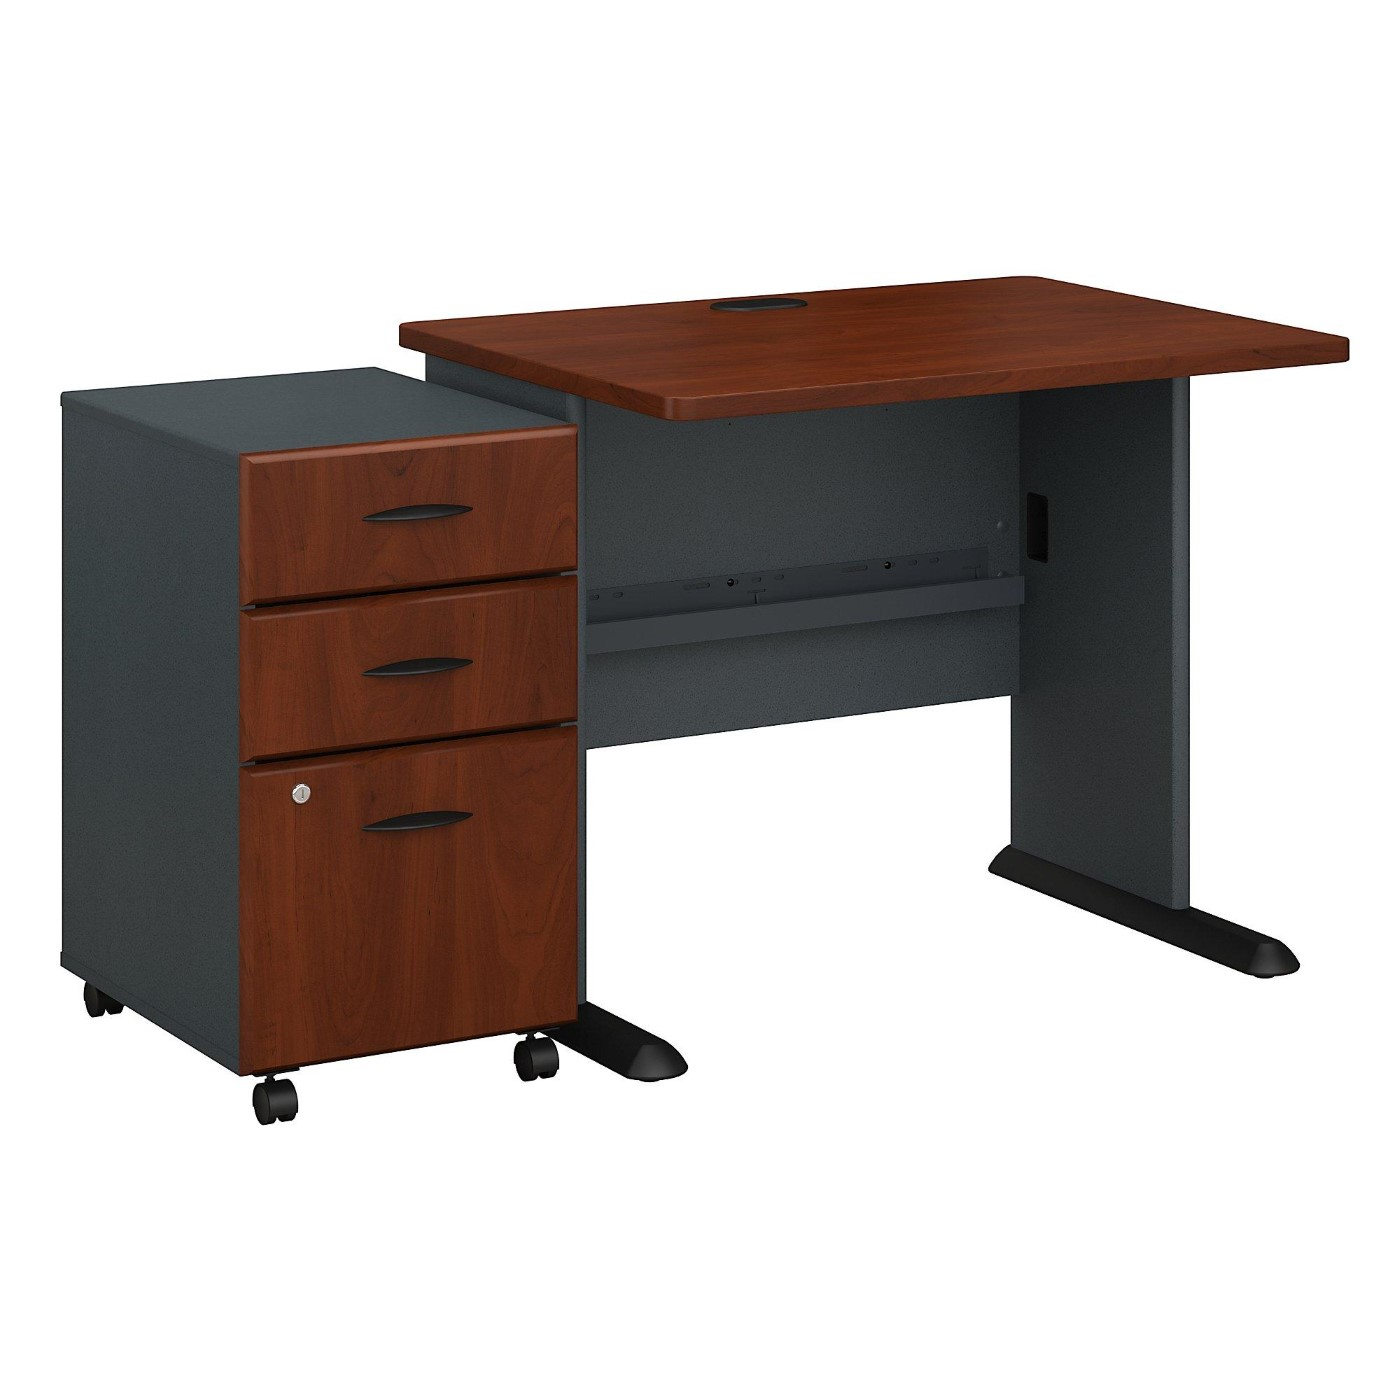 BUSH BUSINESS FURNITURE SERIES A 36W DESK WITH MOBILE FILE CABINET. FREE SHIPPING.